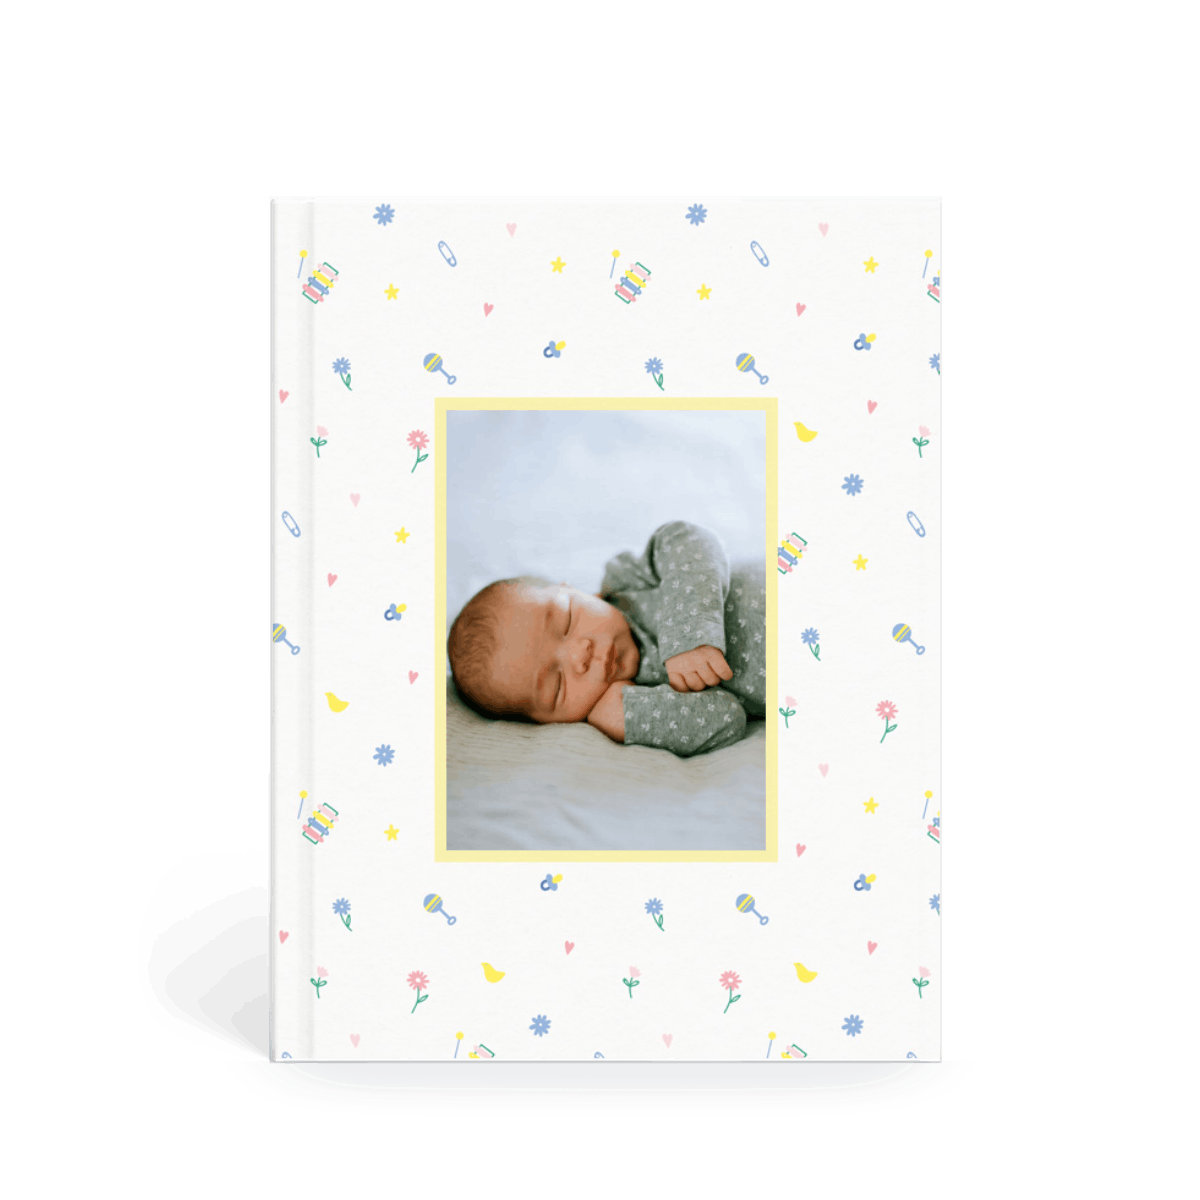 Https%3a%2f%2fwww.papier.com%2fproduct image%2f46483%2f26%2fbaby basics 11463 front 1537354099.png?ixlib=rb 1.1